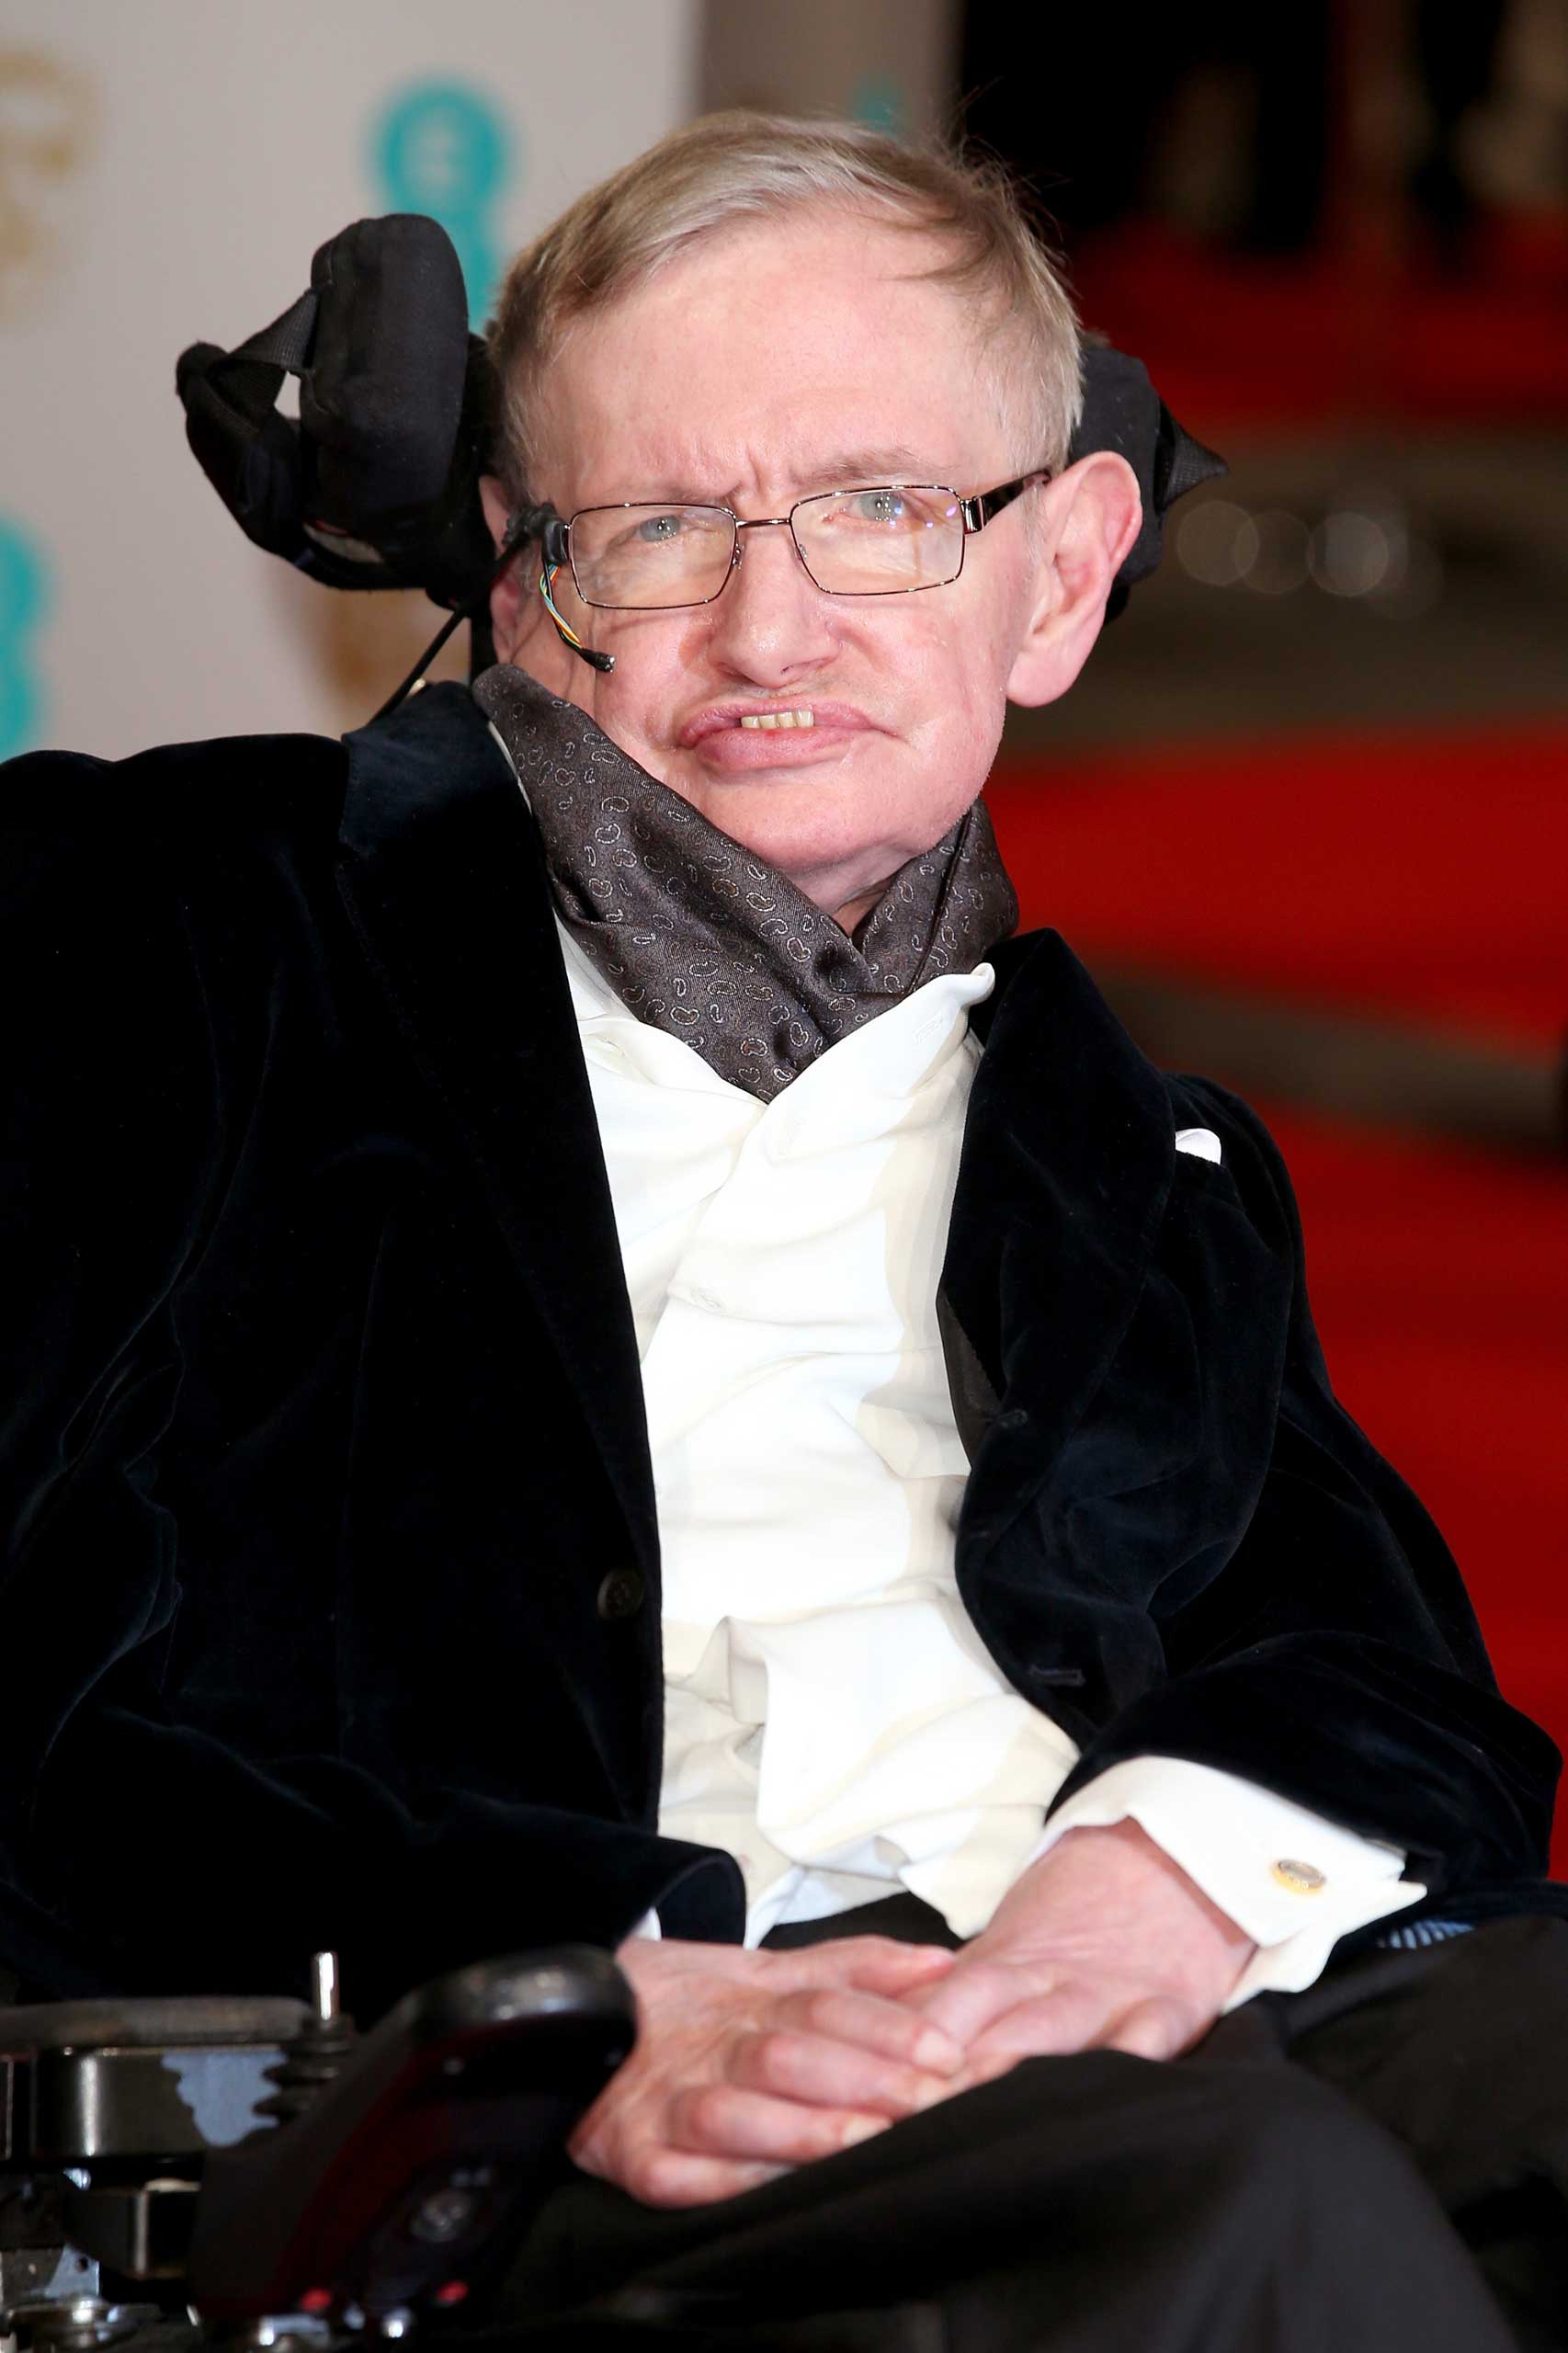 Stephen Hawking attends the EE British Academy Film Awards at The Royal Opera House in London on Feb. 8, 2015.